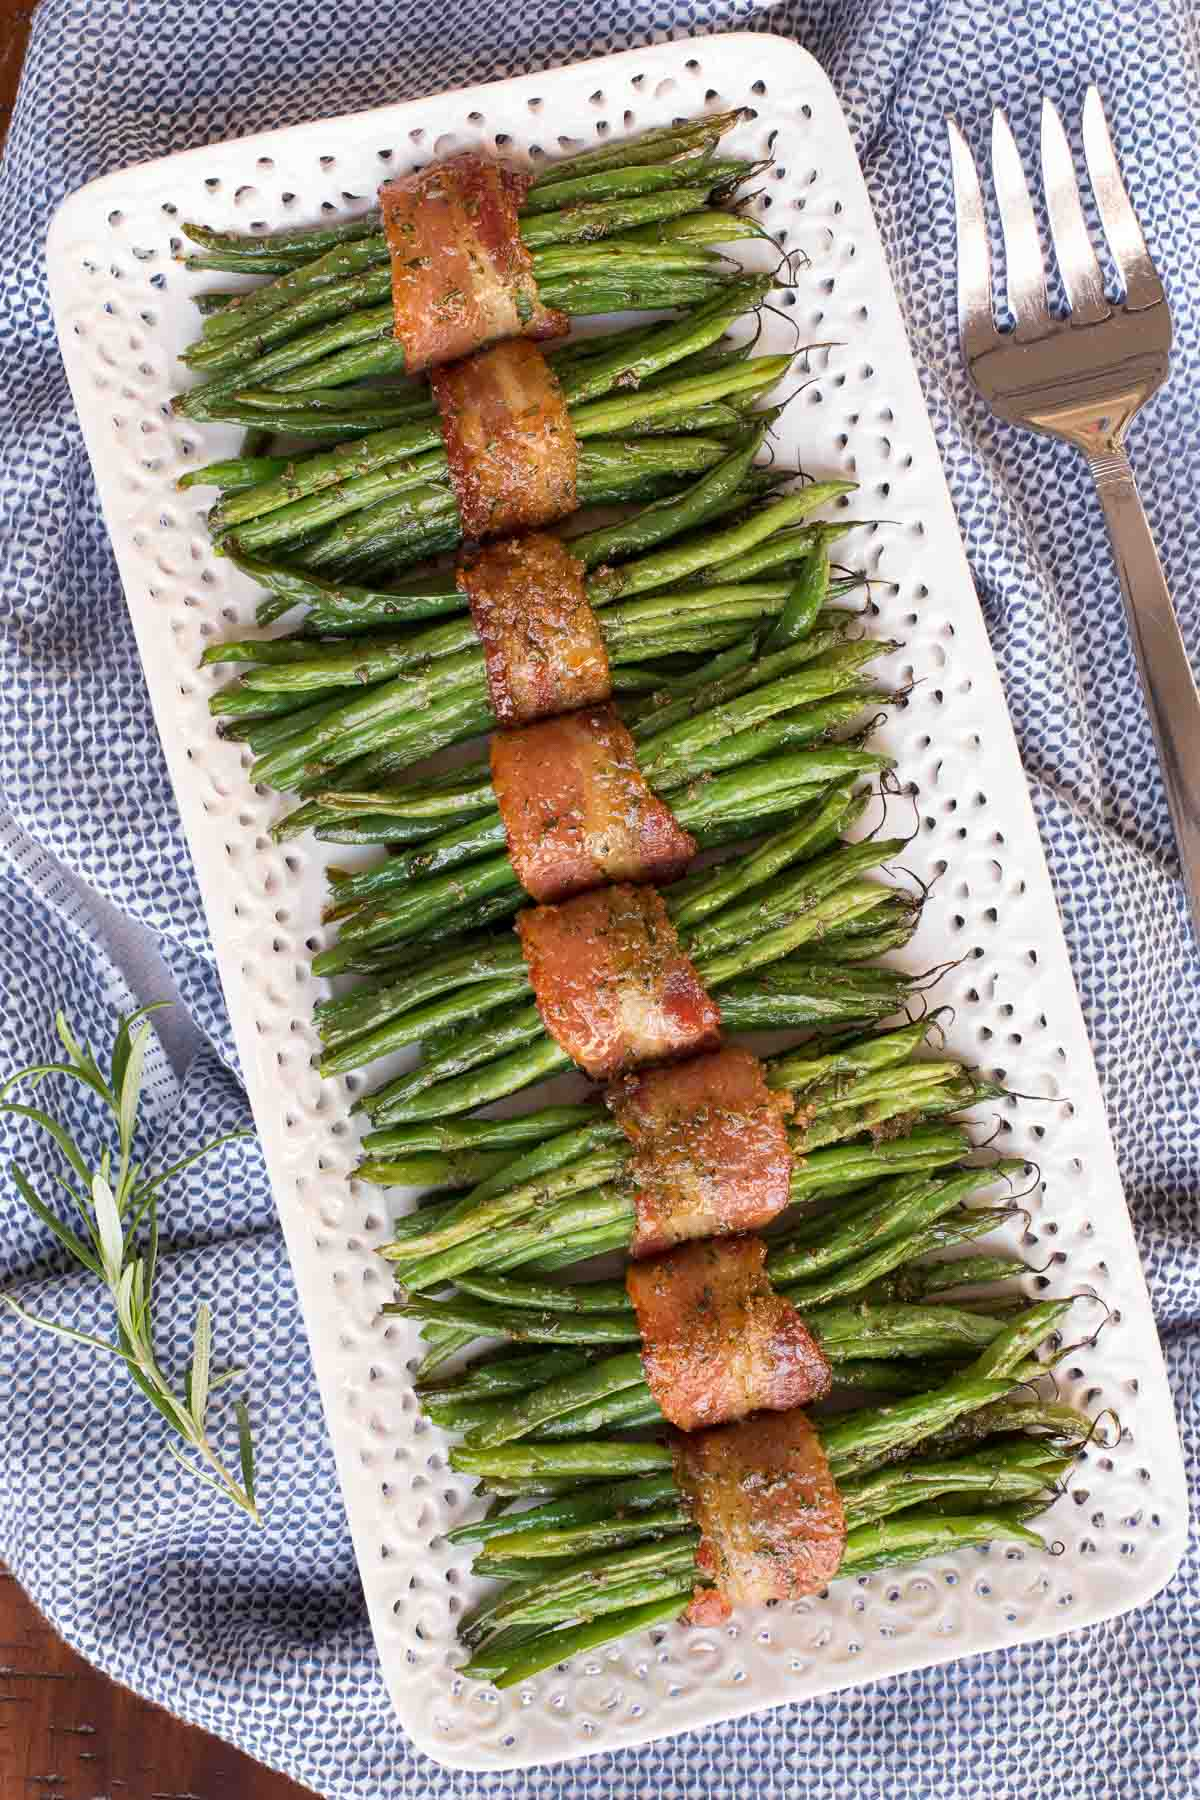 Overhead photo of Bacon Wrapped Green Beans on a white lace platter.